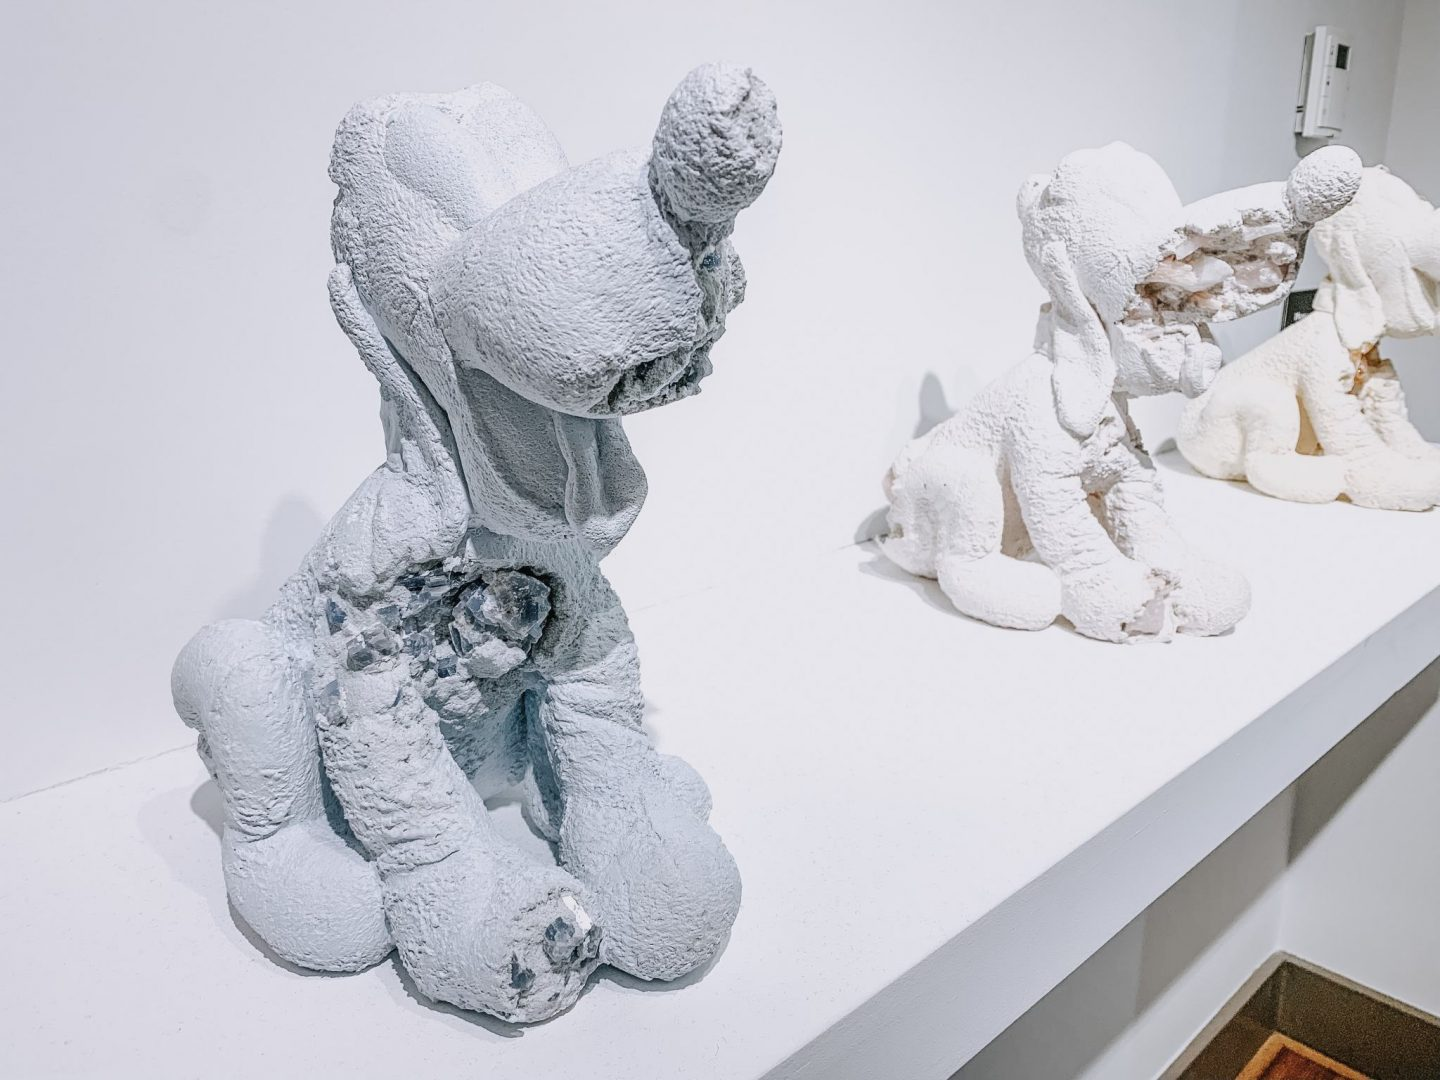 72 Hours In Amsterdam - art exhibition in moco museum